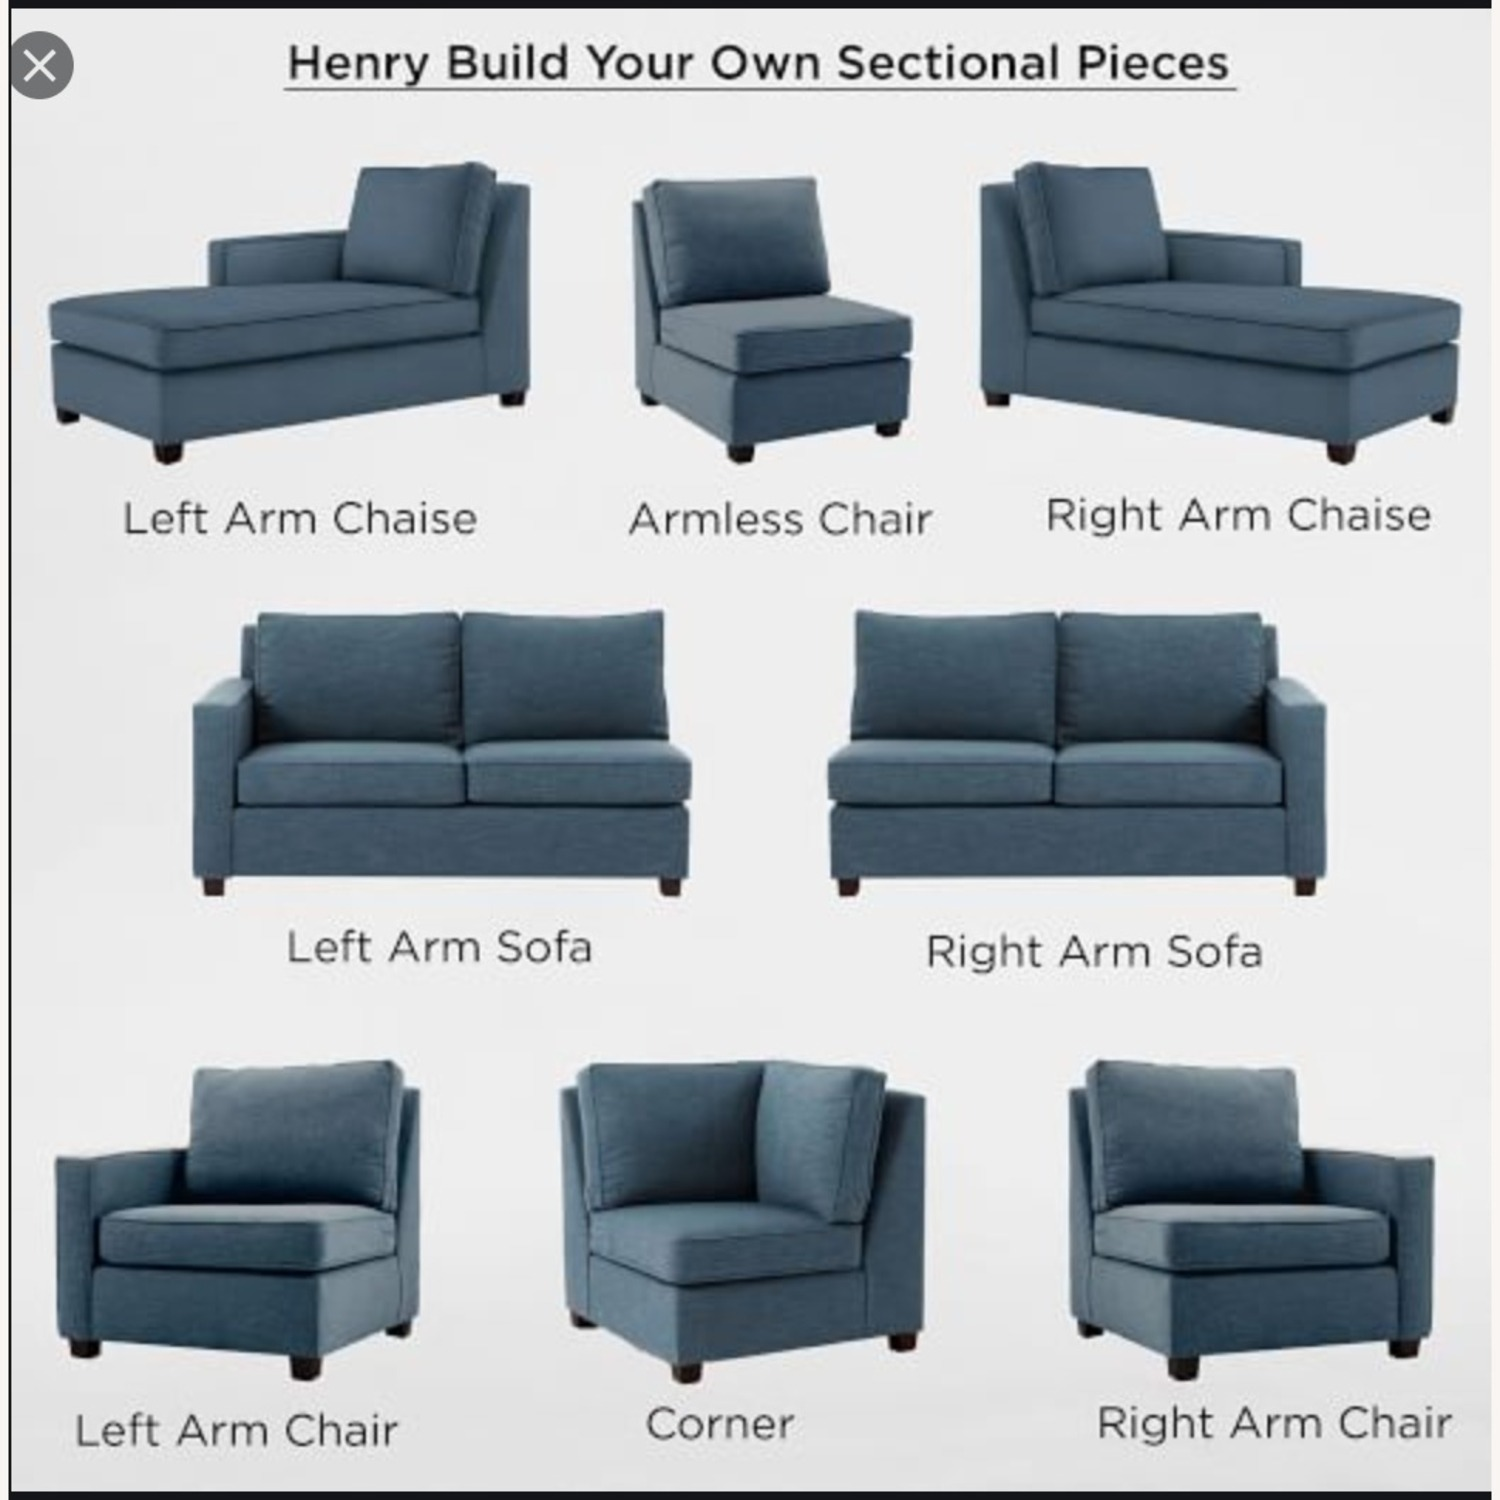 West Elm Henry Nightshade 2-seat Sectional - image-3